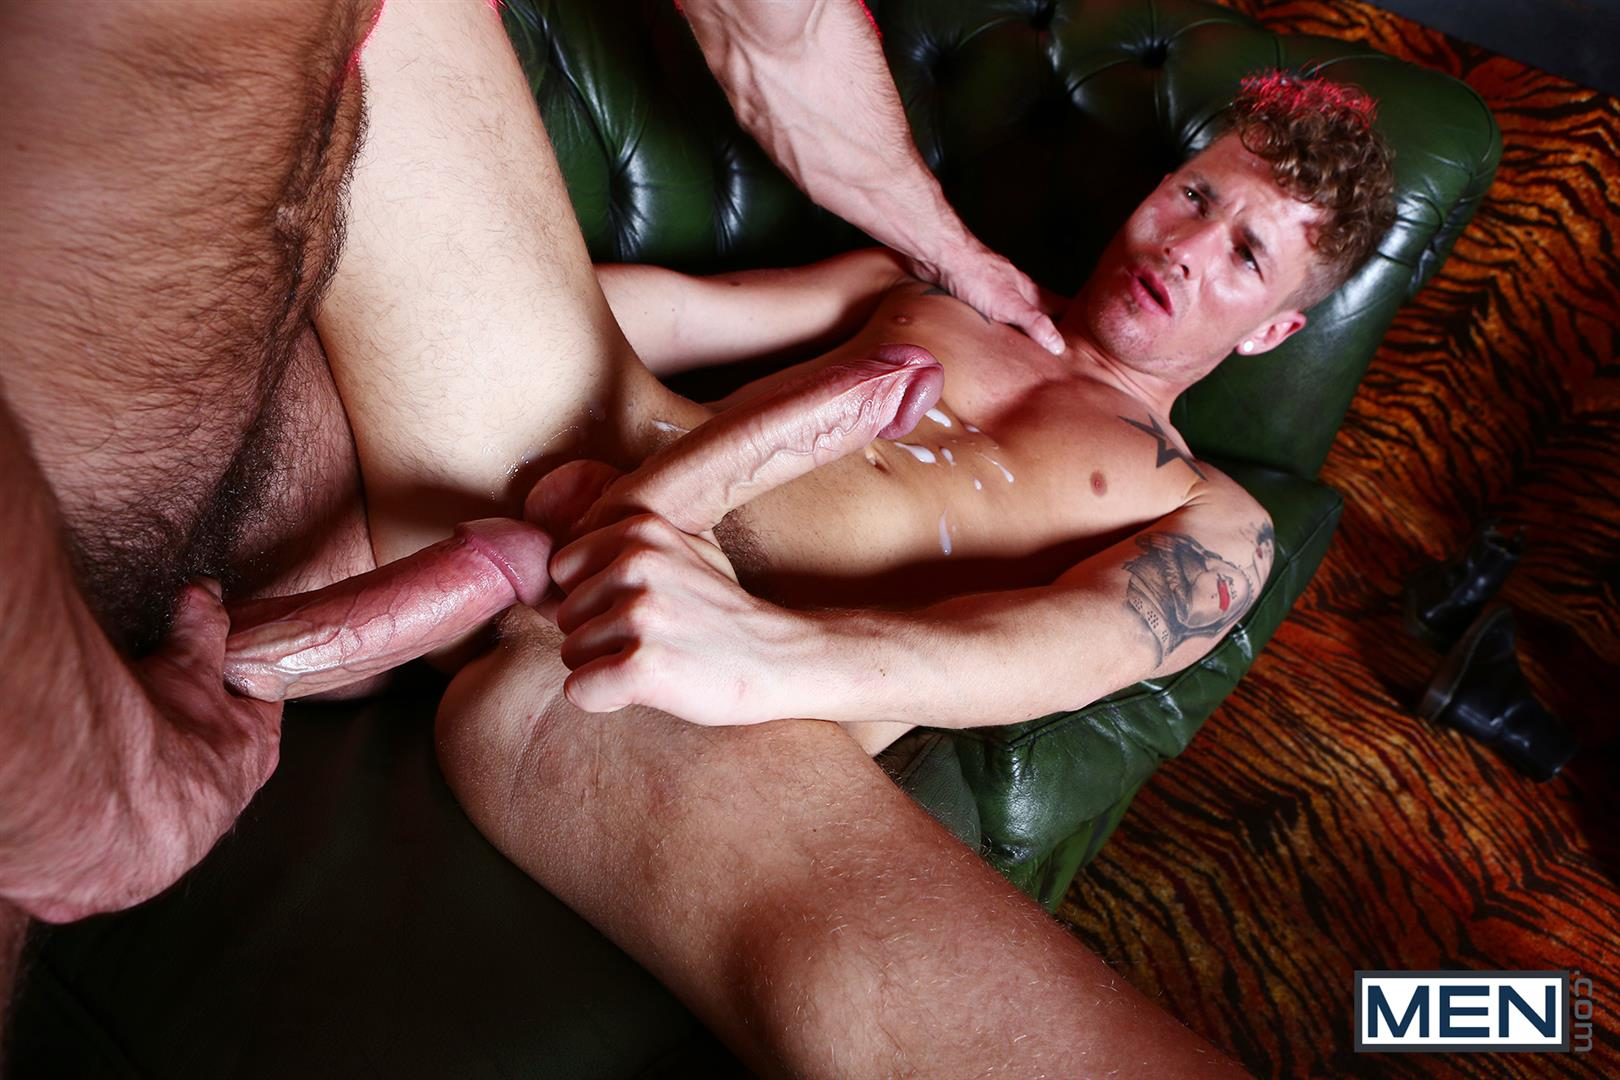 Men-Paddy-OBrian-and-McKenise-Cross-Muscle-Hunks-With-Horse-Cocks-Fucking-Amateur-Gay-Porn-20 Paddy O'Brian Fucking McKensie Cross With His Big Thick Cock